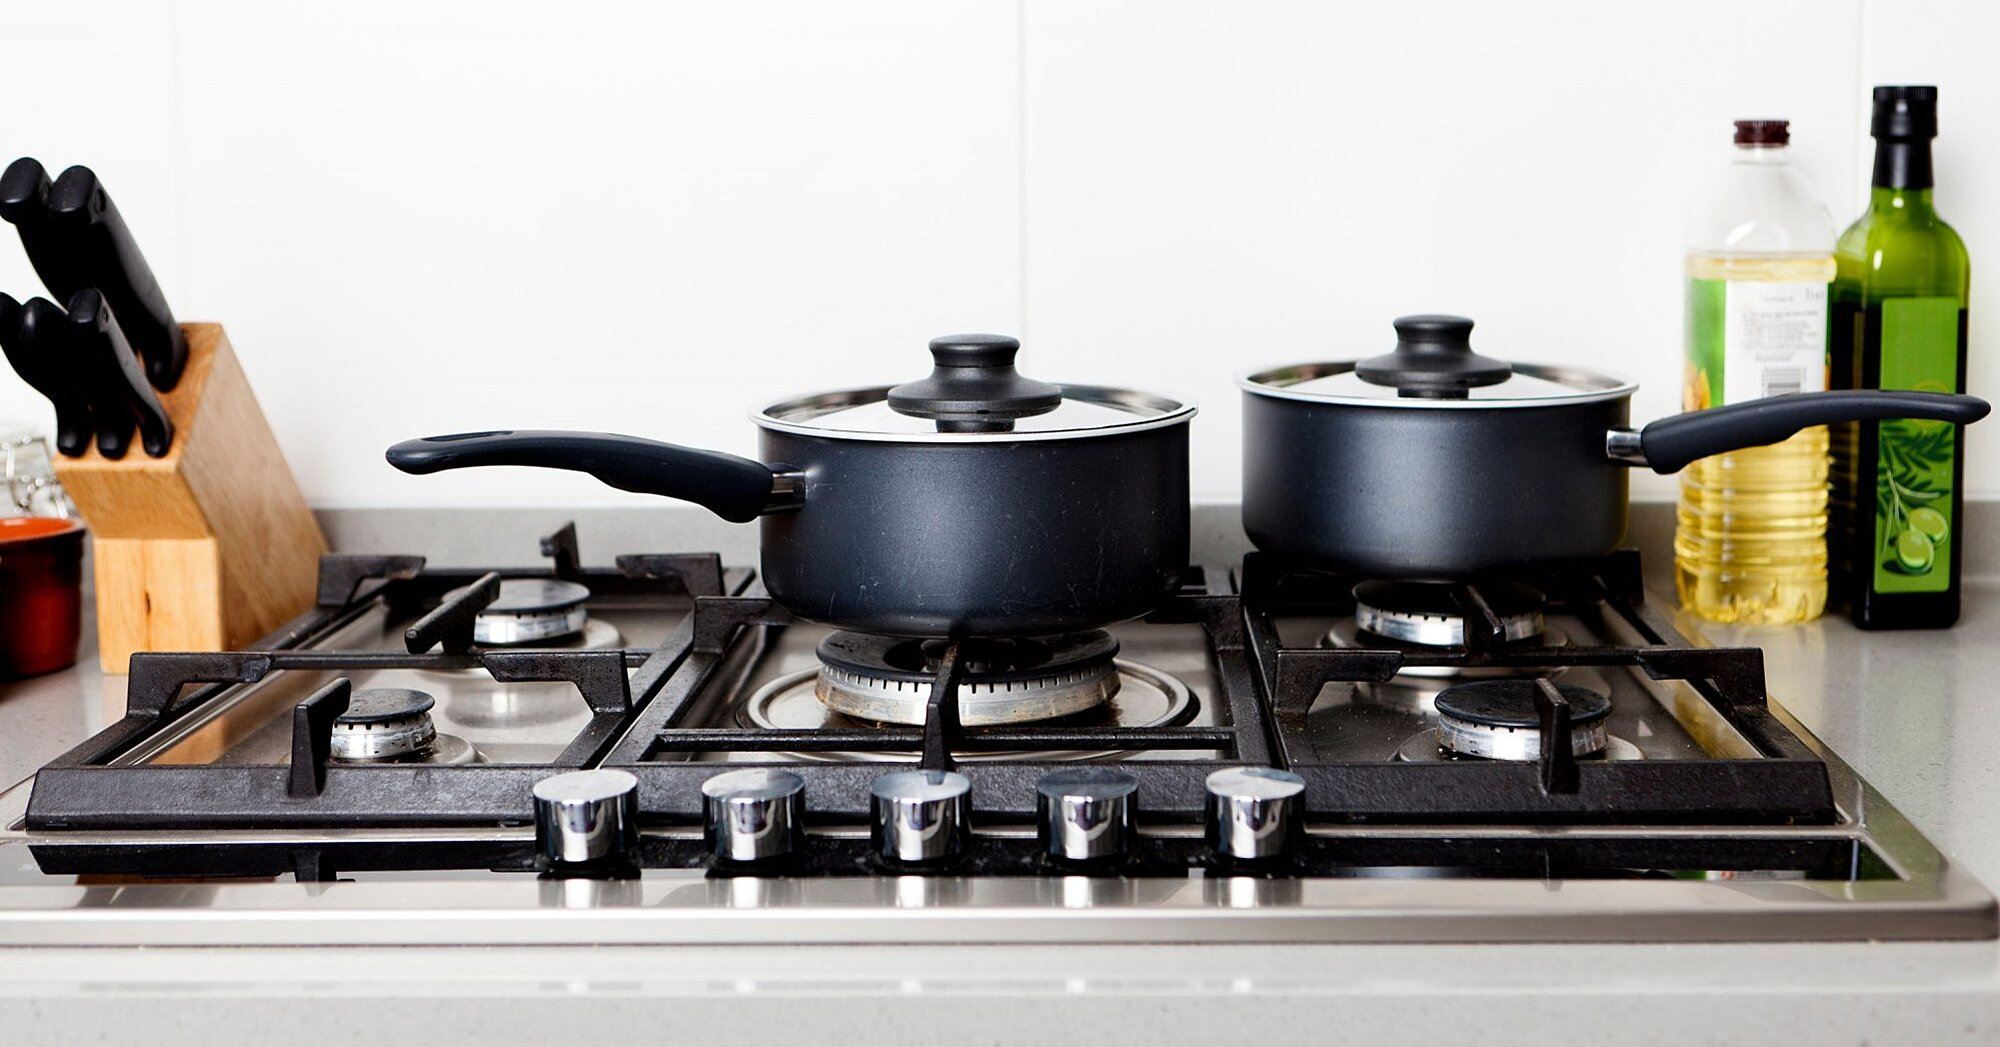 How To Clean Gas Stove Burners Allrecipes